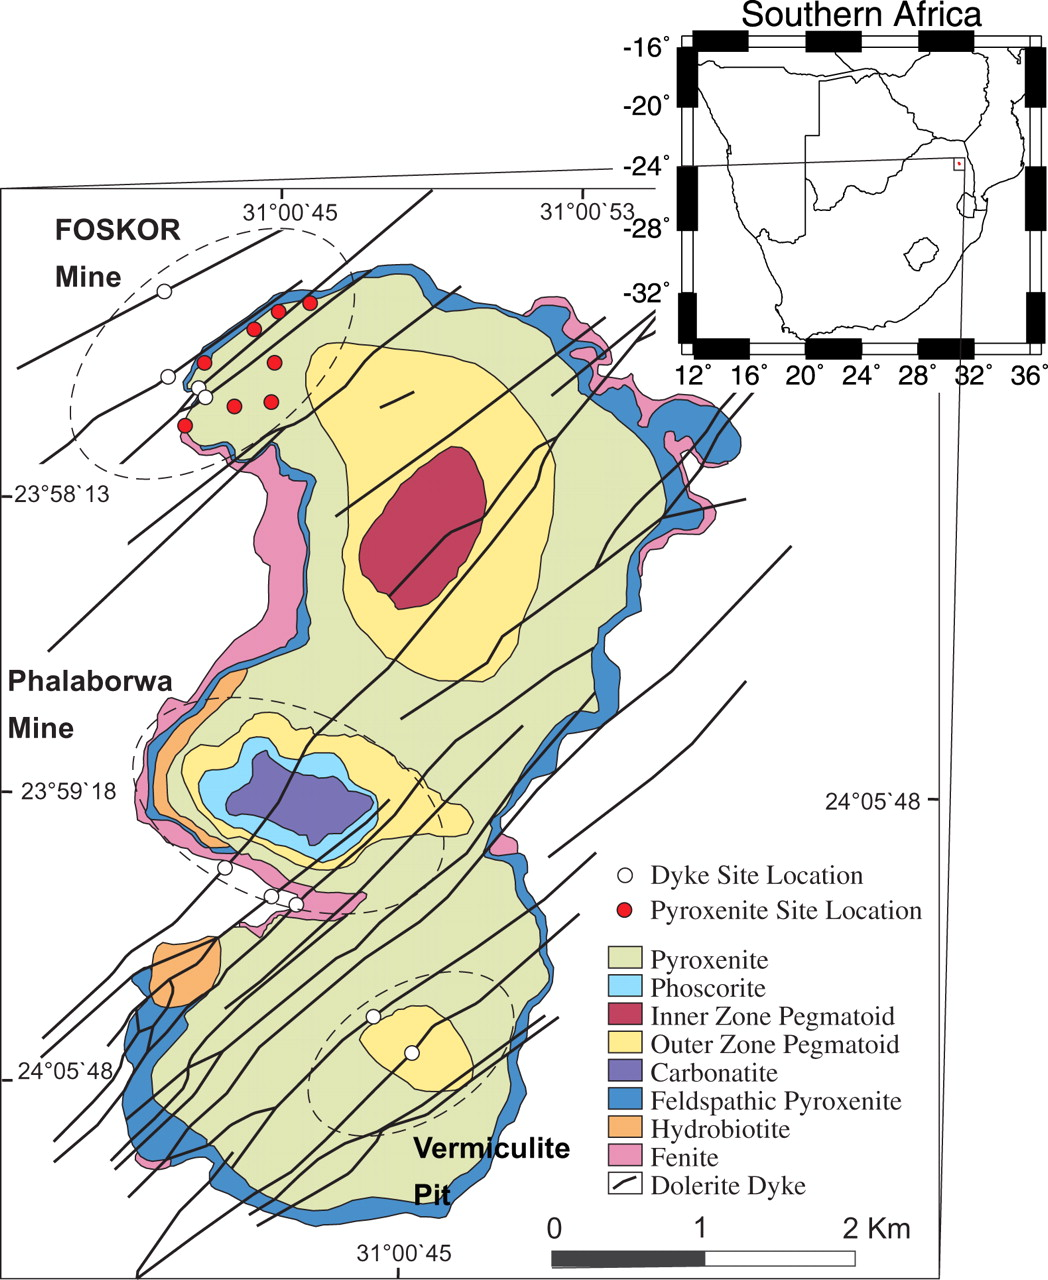 New Palaeoproterozoic Palaeomagnetic Data From The Kaapvaal Craton